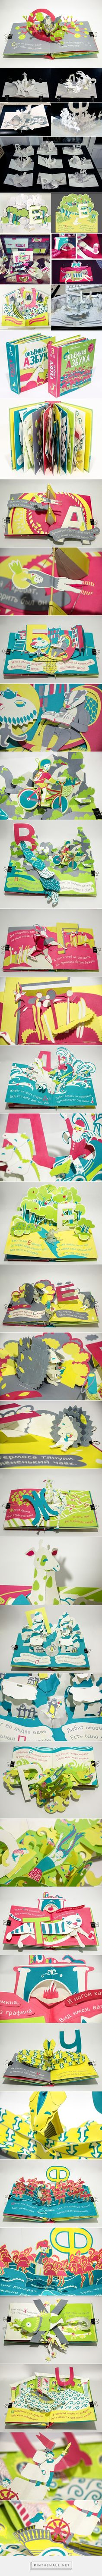 pop-up book 3D Alphabet on Behance